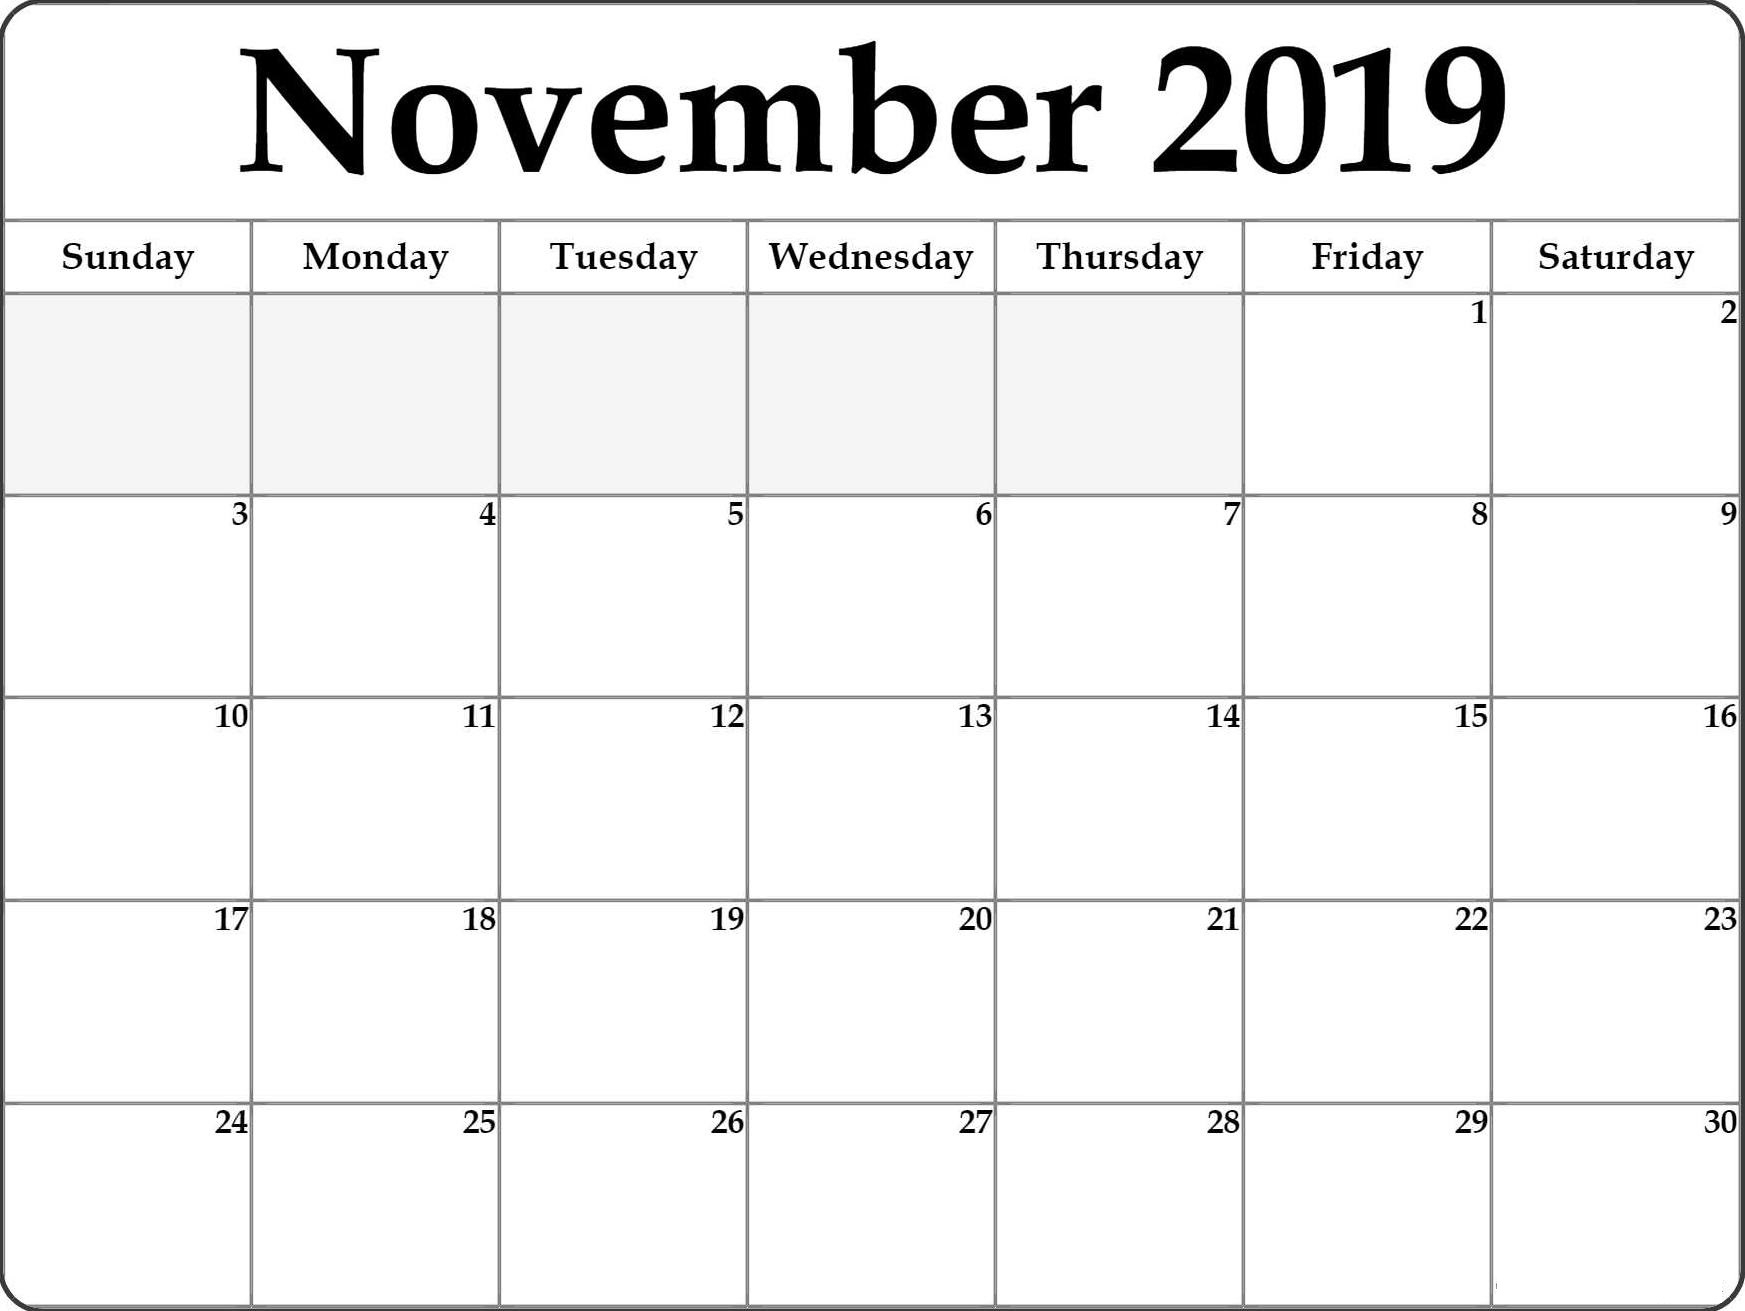 Free November Calendar 2019 Print Out - Set Your Plan